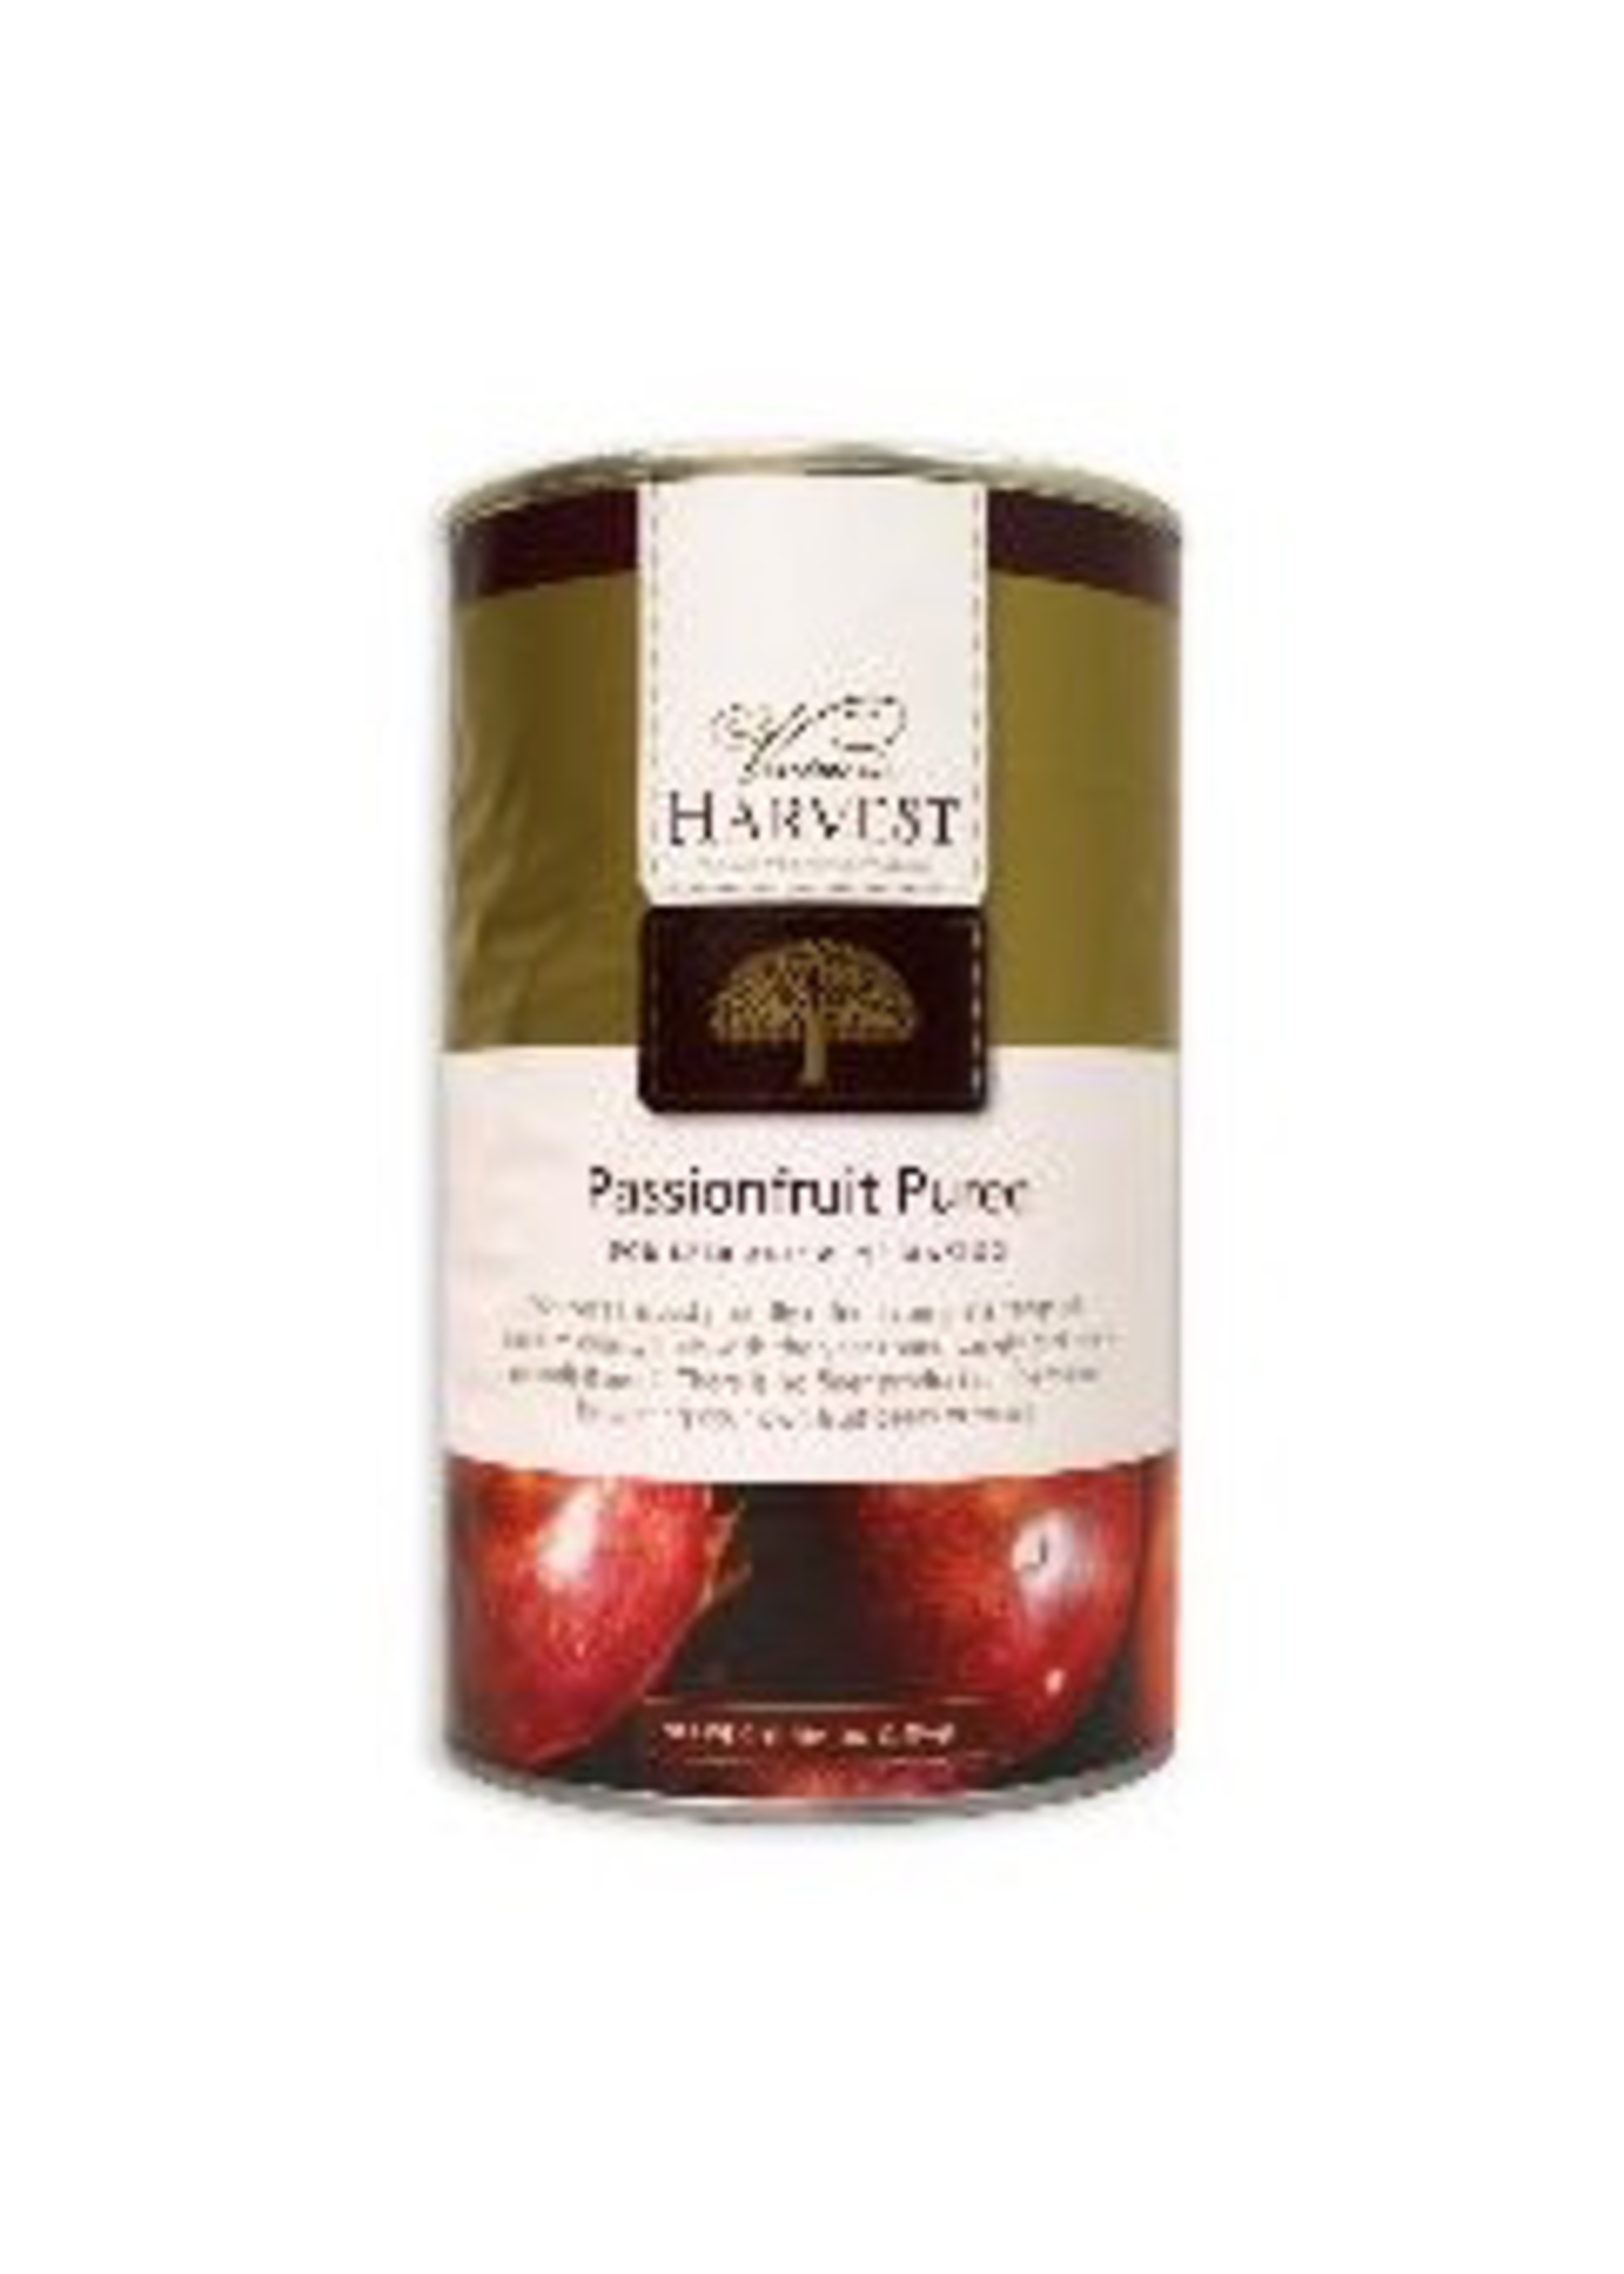 Extracts/Adjuncts Vintner's Harvest Passionfruit Puree - 49 Oz Can